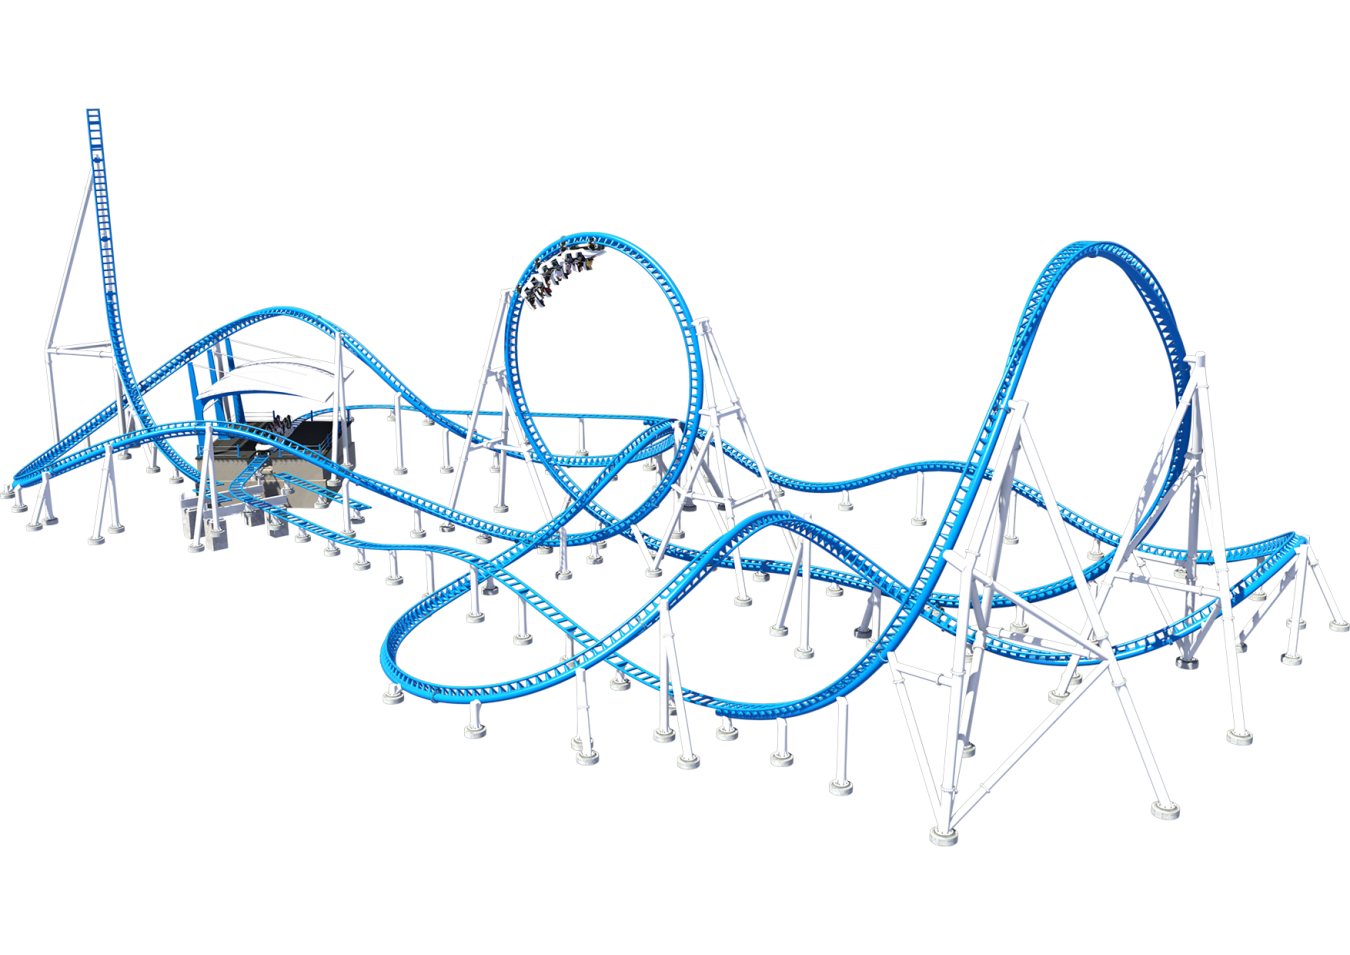 intamin-lsm-roller-coaster-layout-triple-launch-2x12-1.png